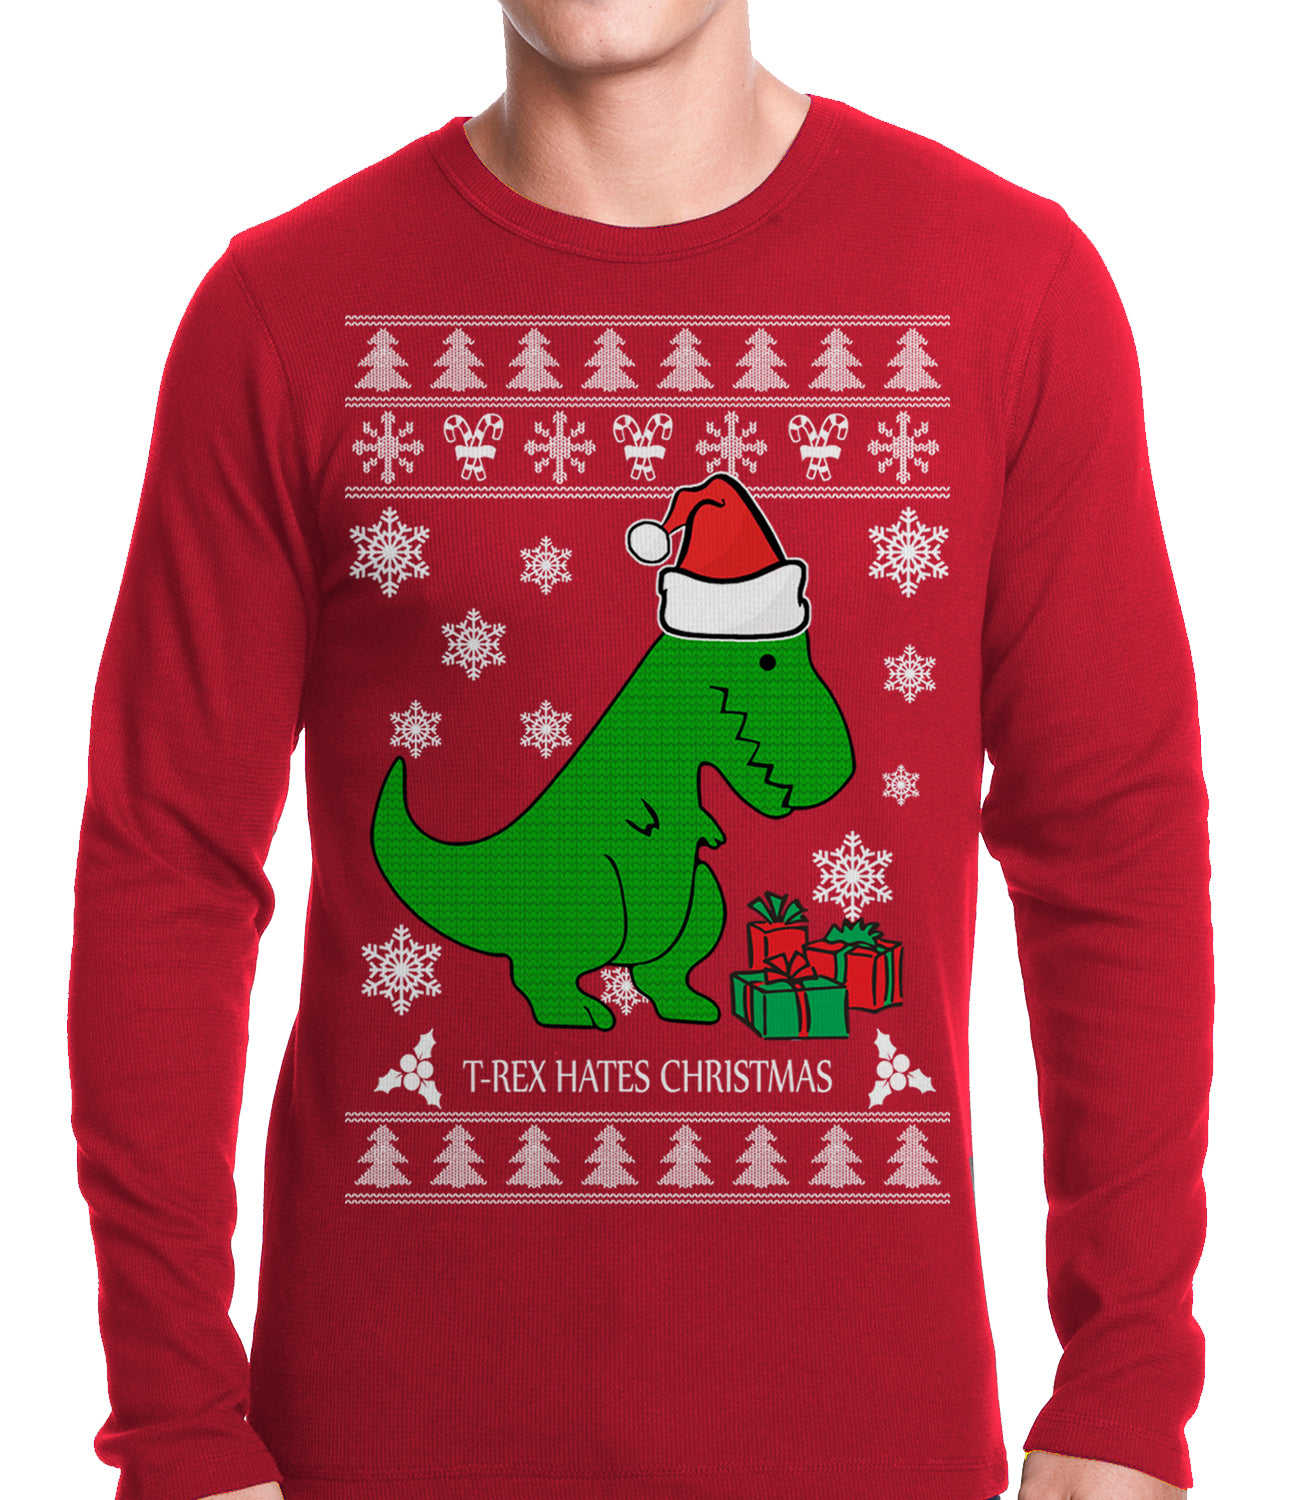 T Rex Christmas Sweater.T Rex Hates Christmas Ugly Christmas Sweater Adult Thermal Shirt